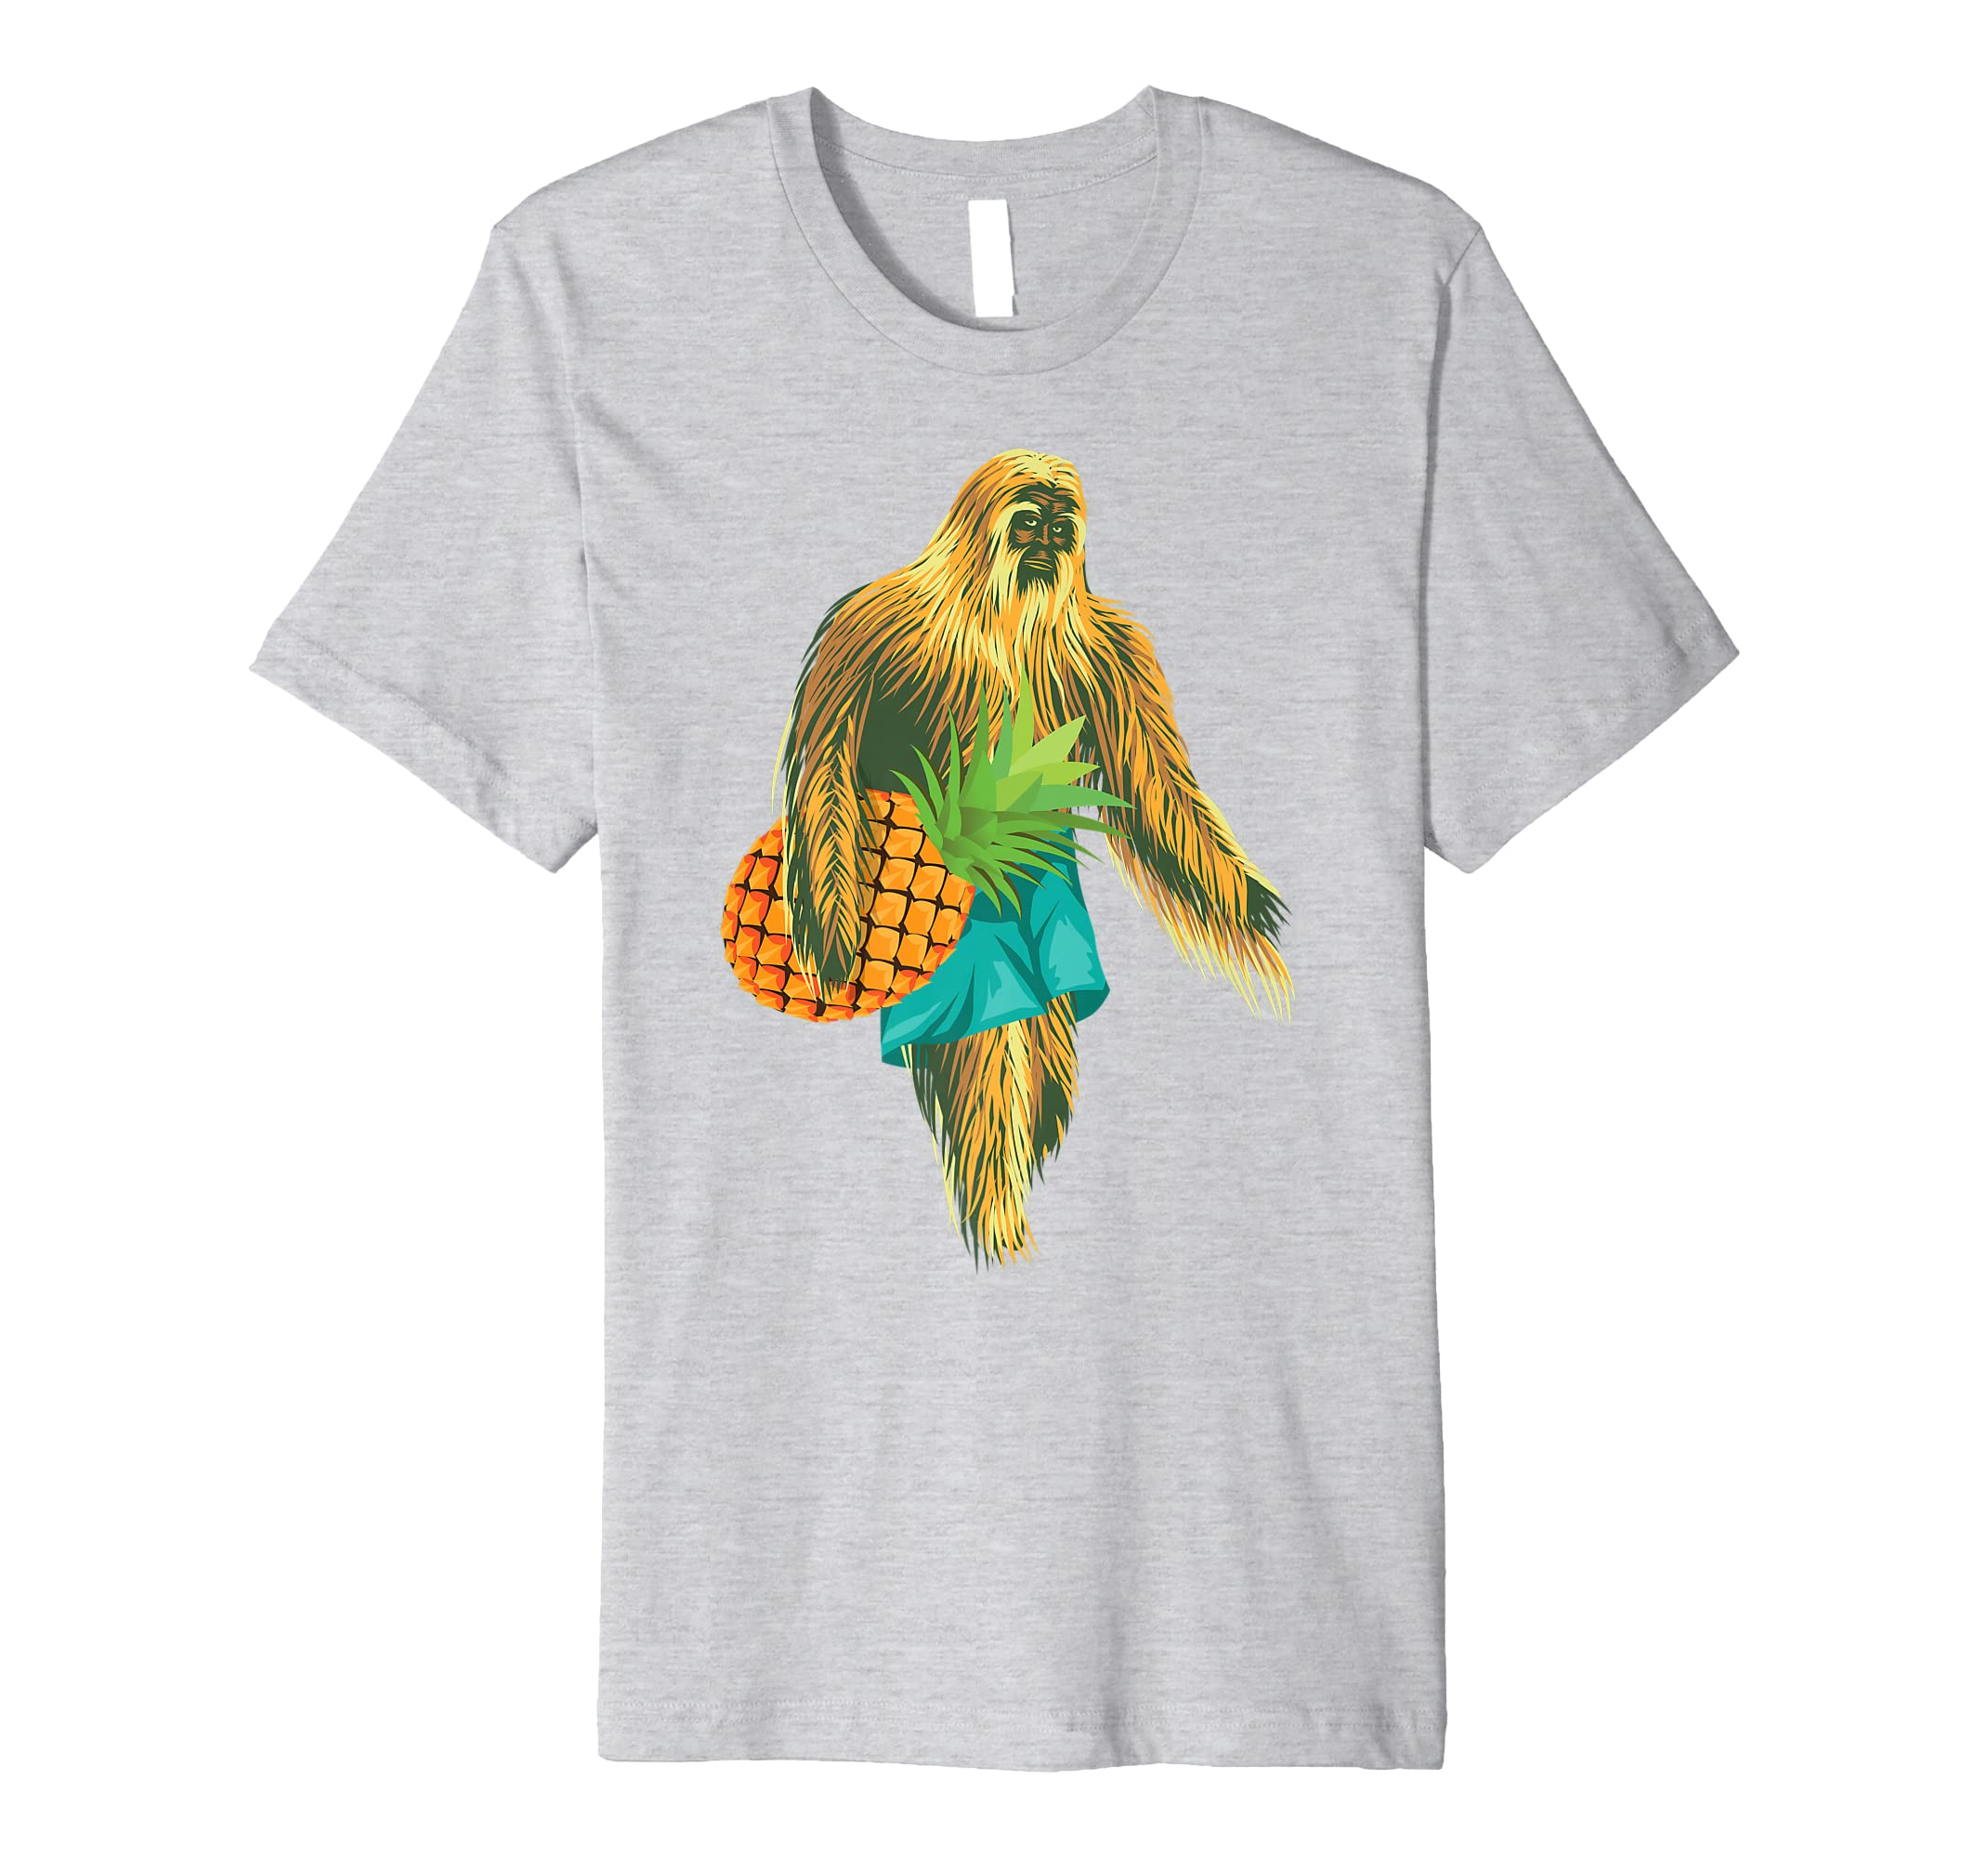 743bb94a Amazon.com: Bigfoot Carrying Pineapple Shirt | Cool Undefeated Ape Gift:  Clothing